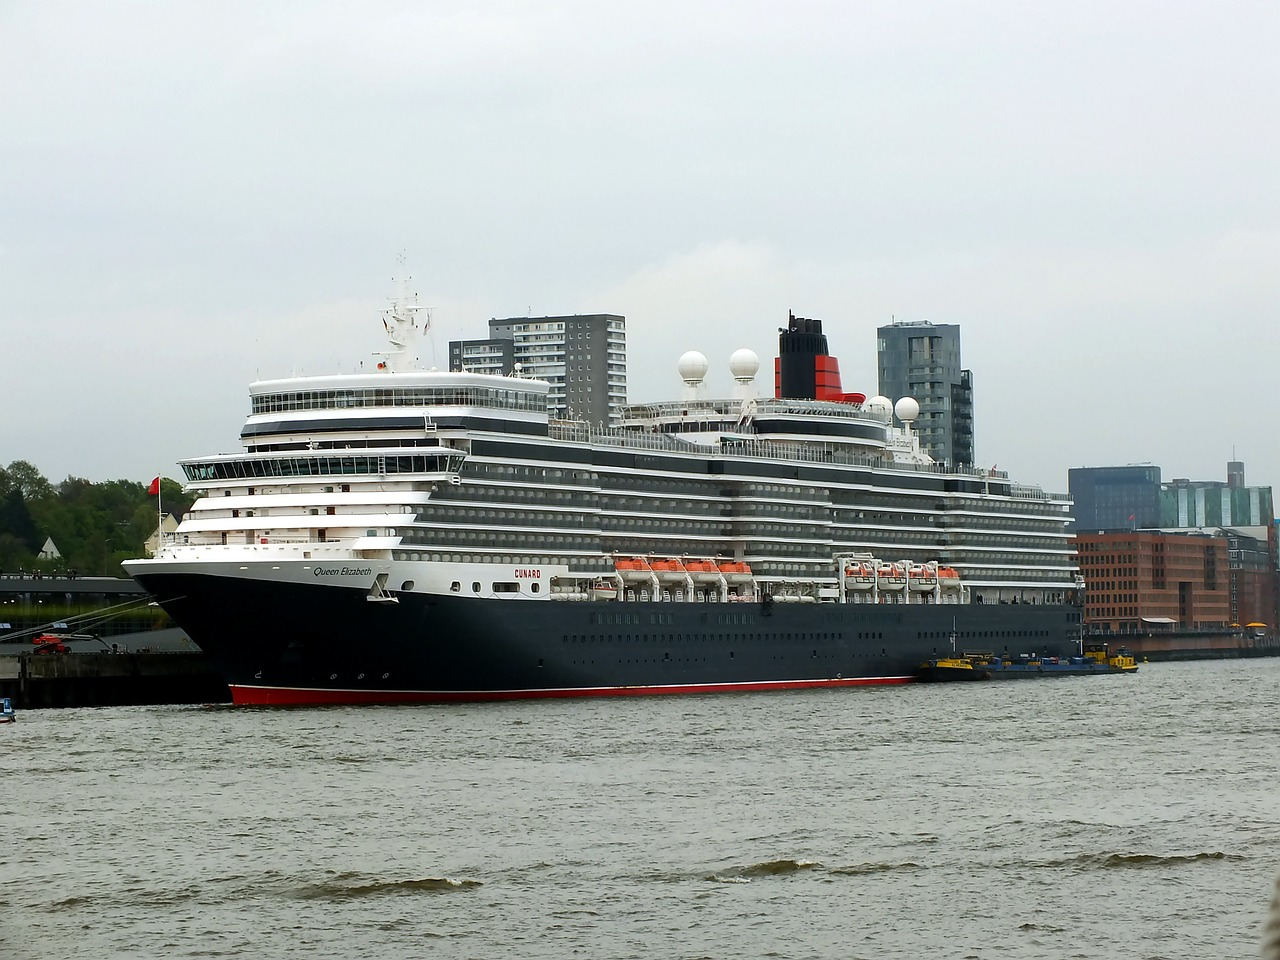 Things you didn't know about the MS Queen Elizabeth